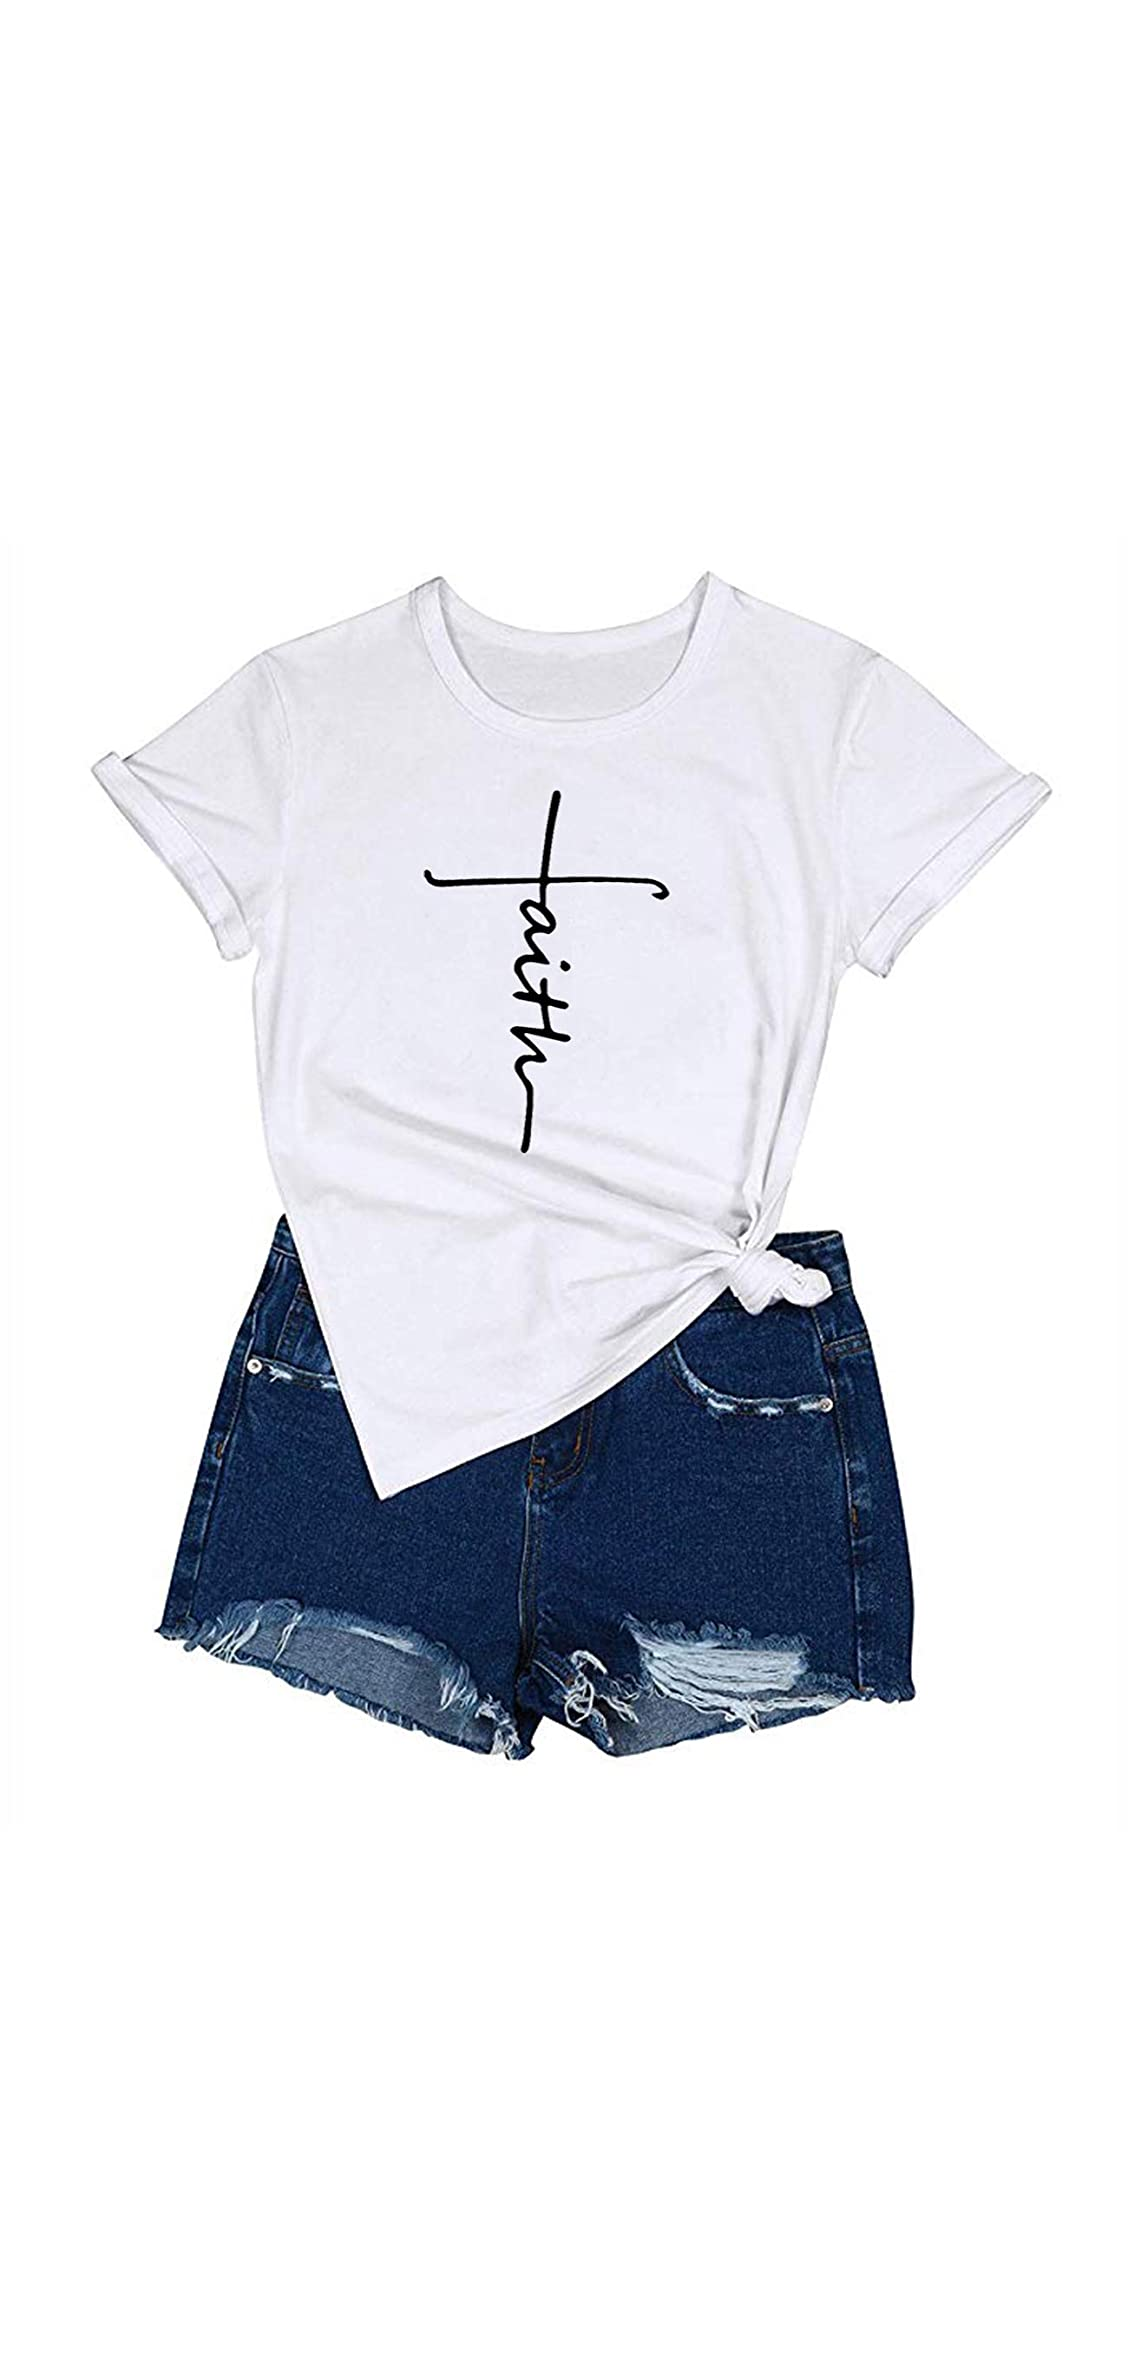 Women's Cross Faith T-shirt Casual Short Sleeve And Long